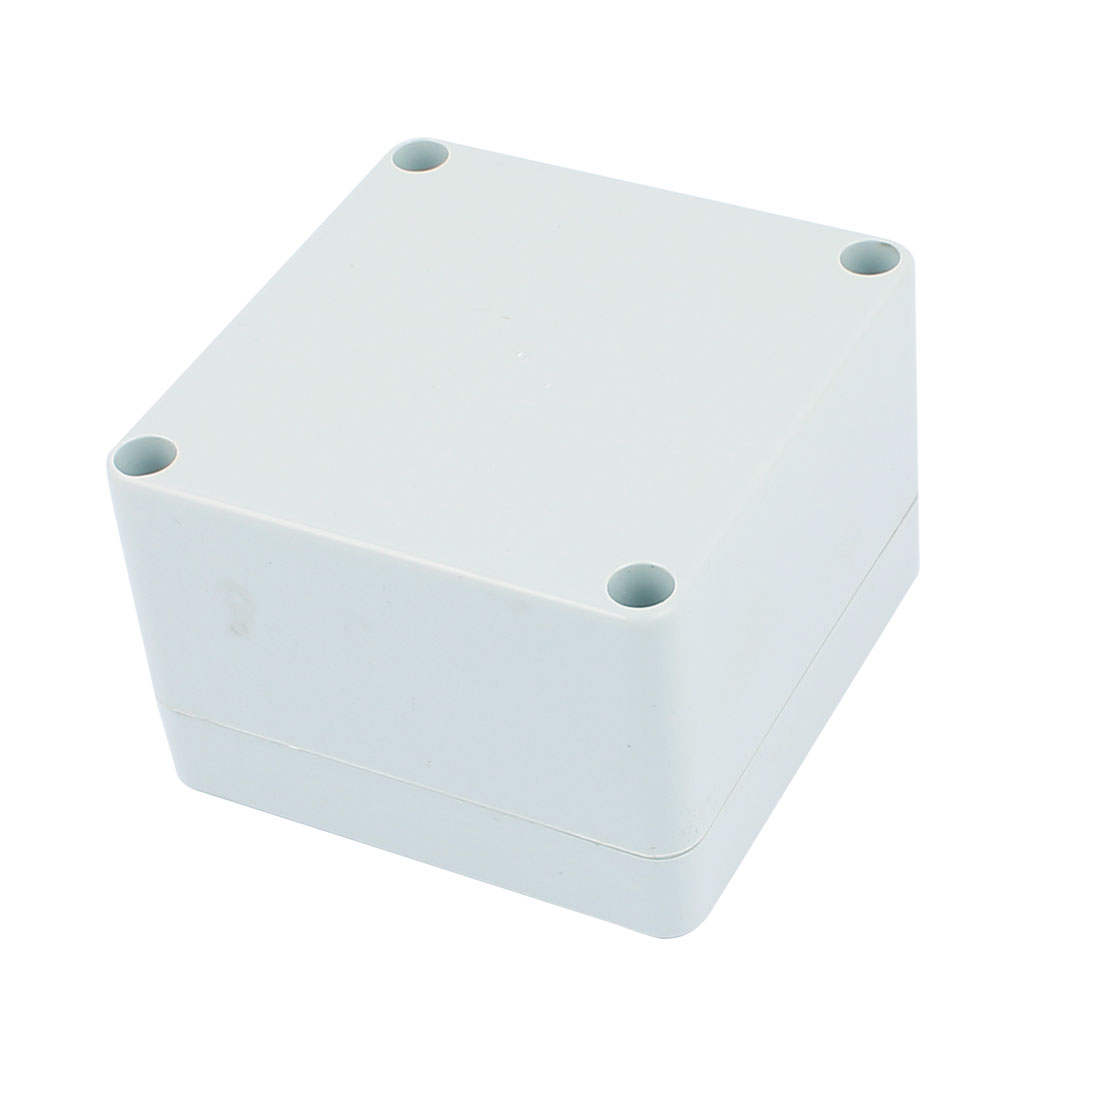 Dustproof IP65 Junction Box DIY Terminal Connection Enclosure Adaptable 75mm x 73mm x 48mm